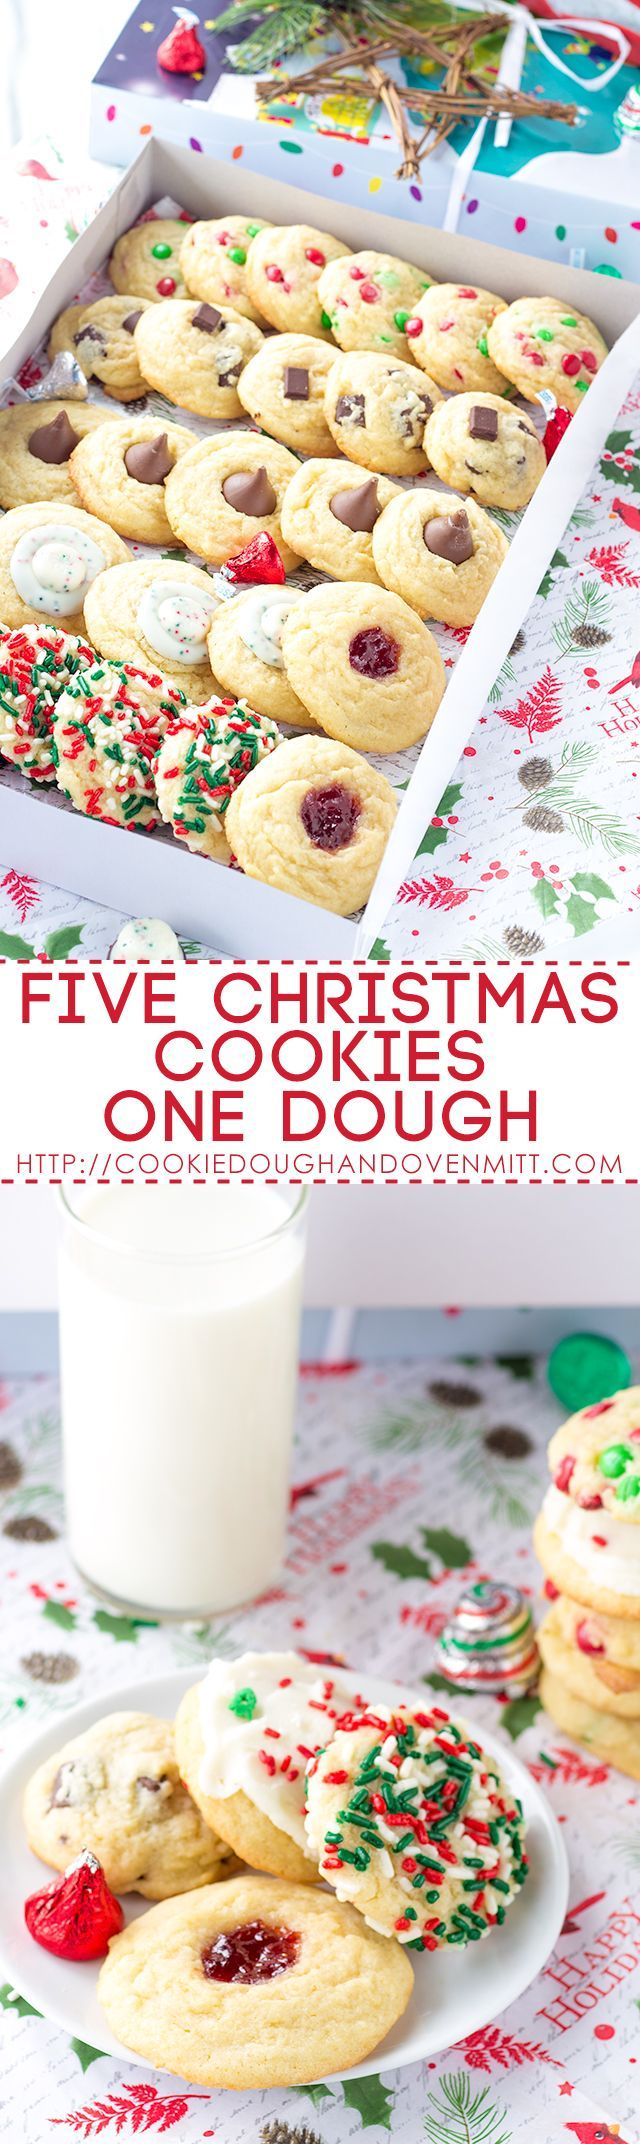 Giving a cookie box? Using this five christmas cookies one dough recipe. Fill the box up with an assortment of cookies without making several recipes.